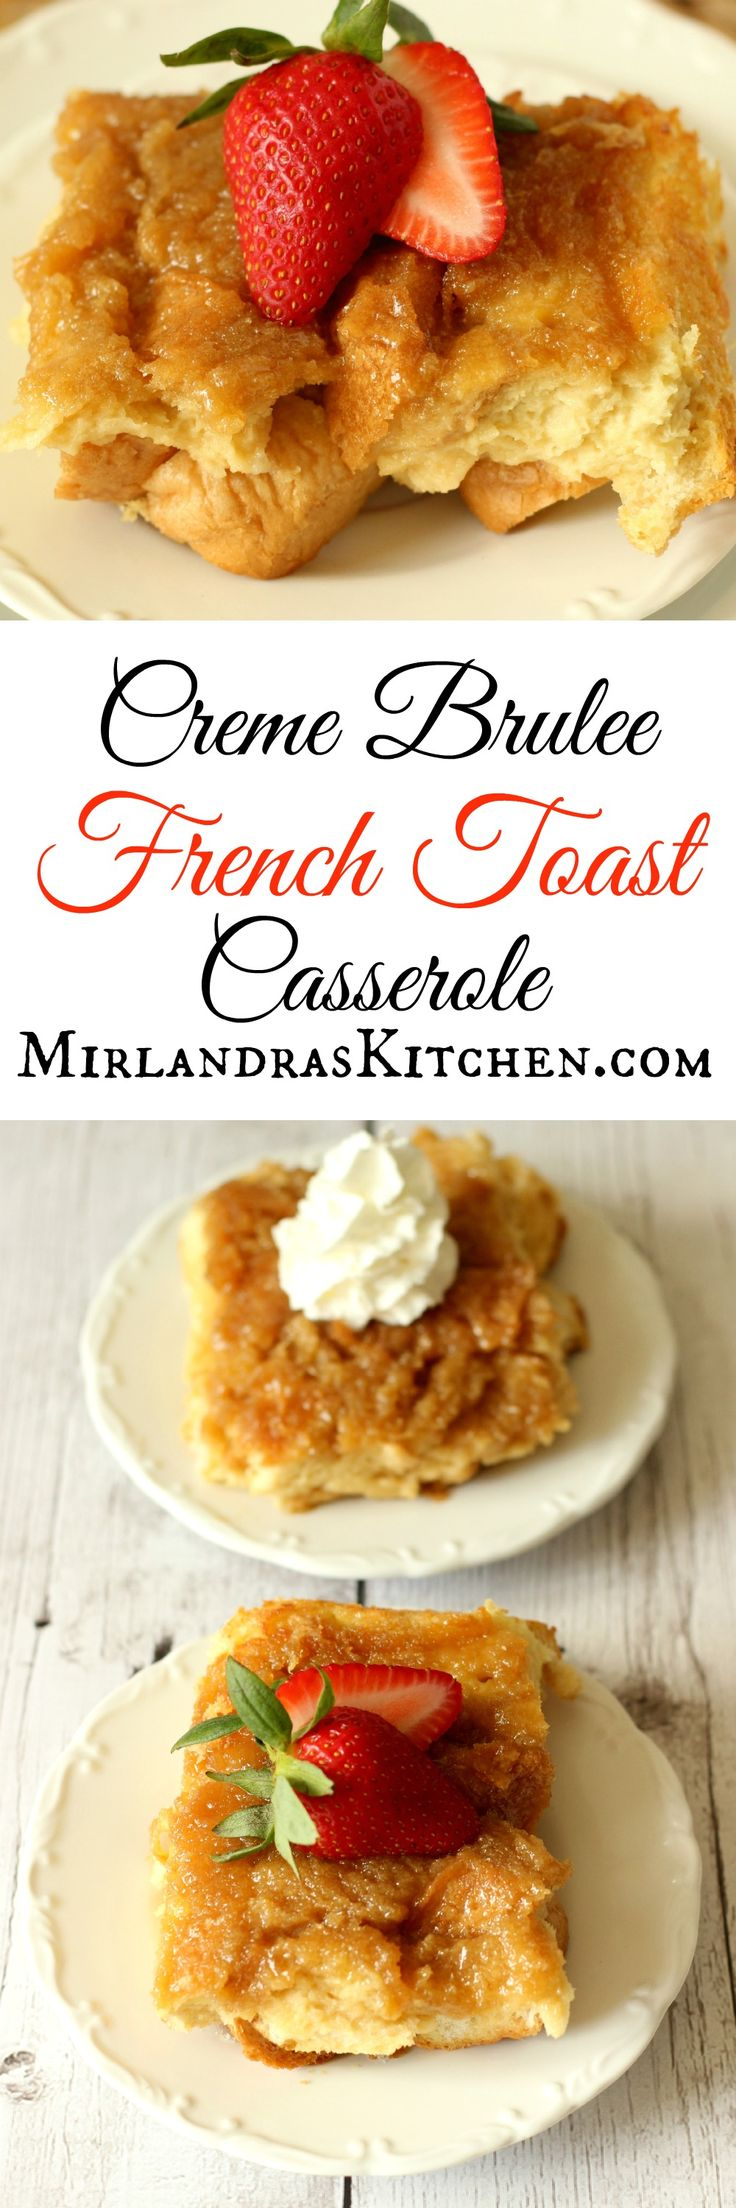 Creme Brulee French Toast Casserole is assembled in minutes the night before and bakes up into a luscious, sweet caramel-flavored custard around the bread.  It is perfect for company, birthday breakfasts, and special occasions in general.  It is the perfect combination of creme brulee and French toast.  Children and adults will rave about this wonderful treat.